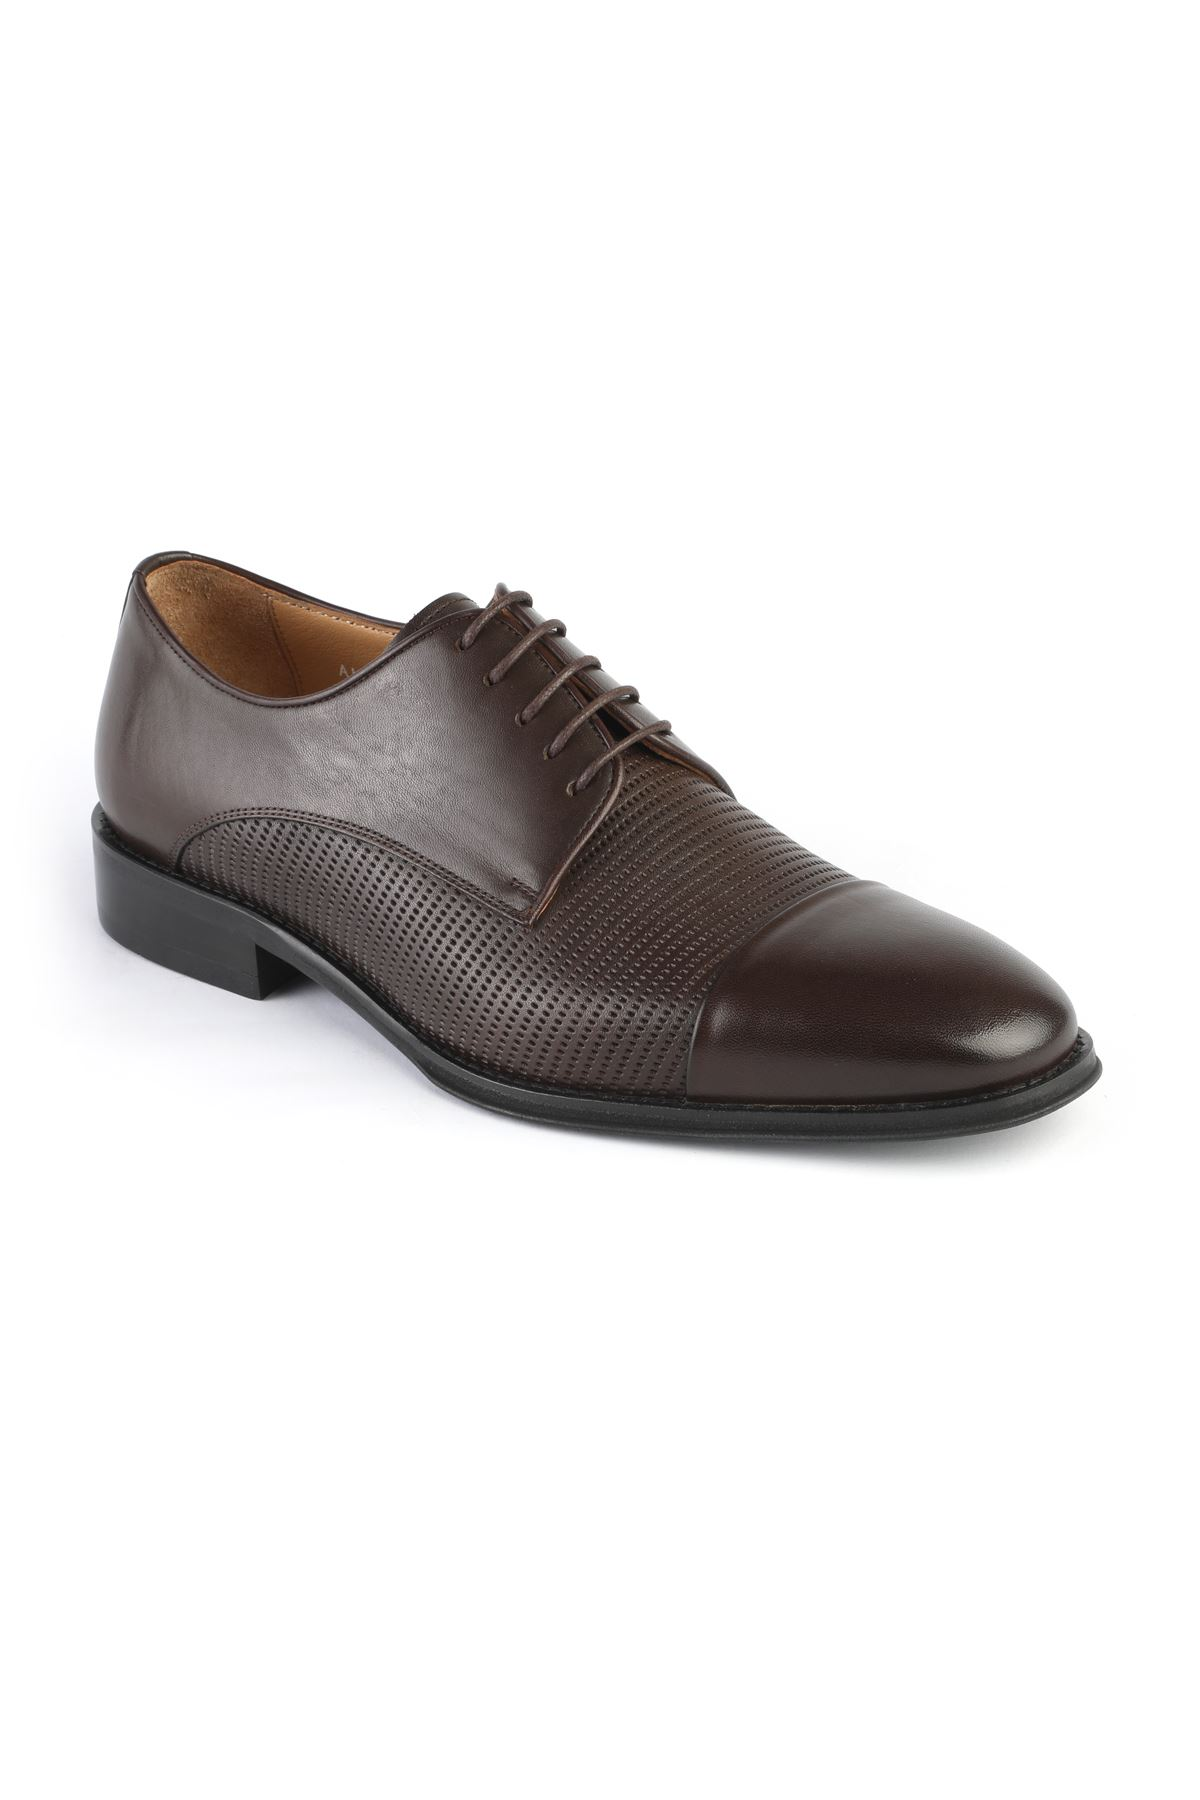 Libero 3271 Brown Classic Shoes